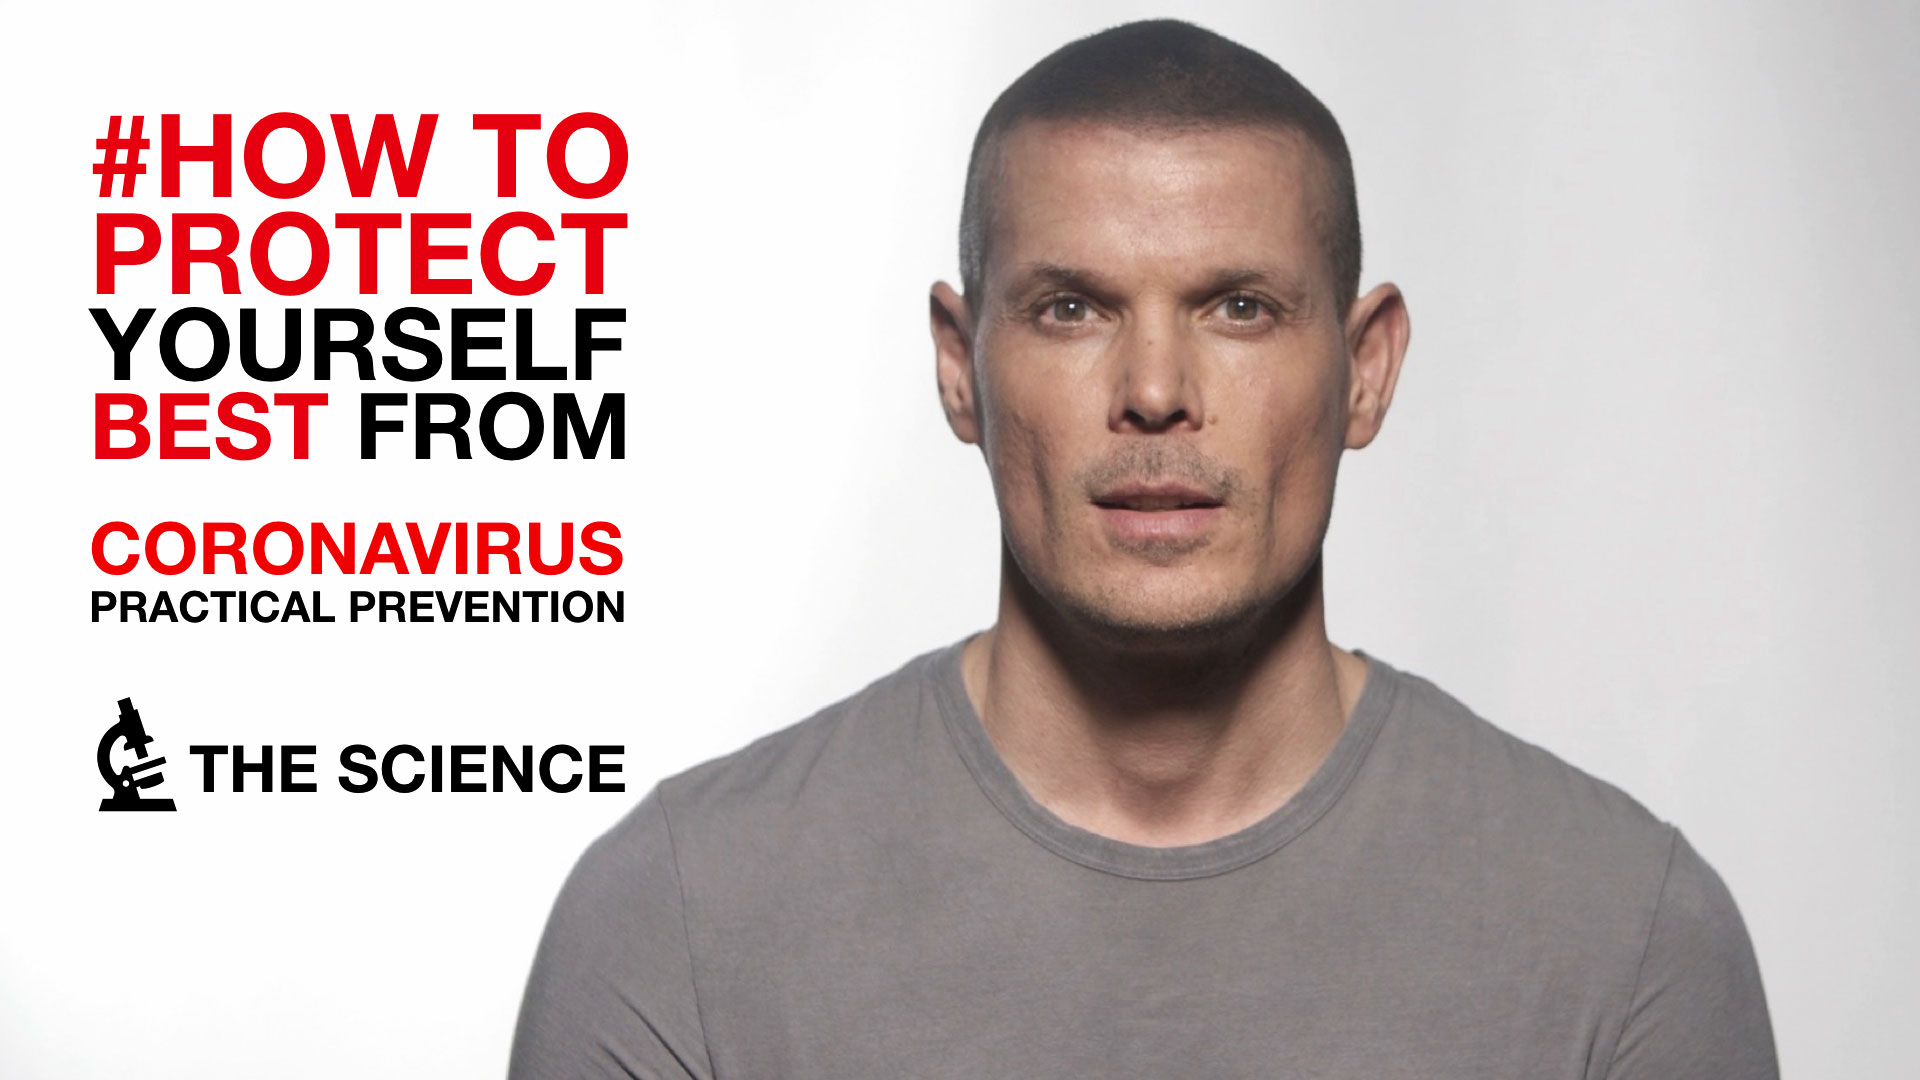 Coronavirus: how to protect yourself best: the science revealed